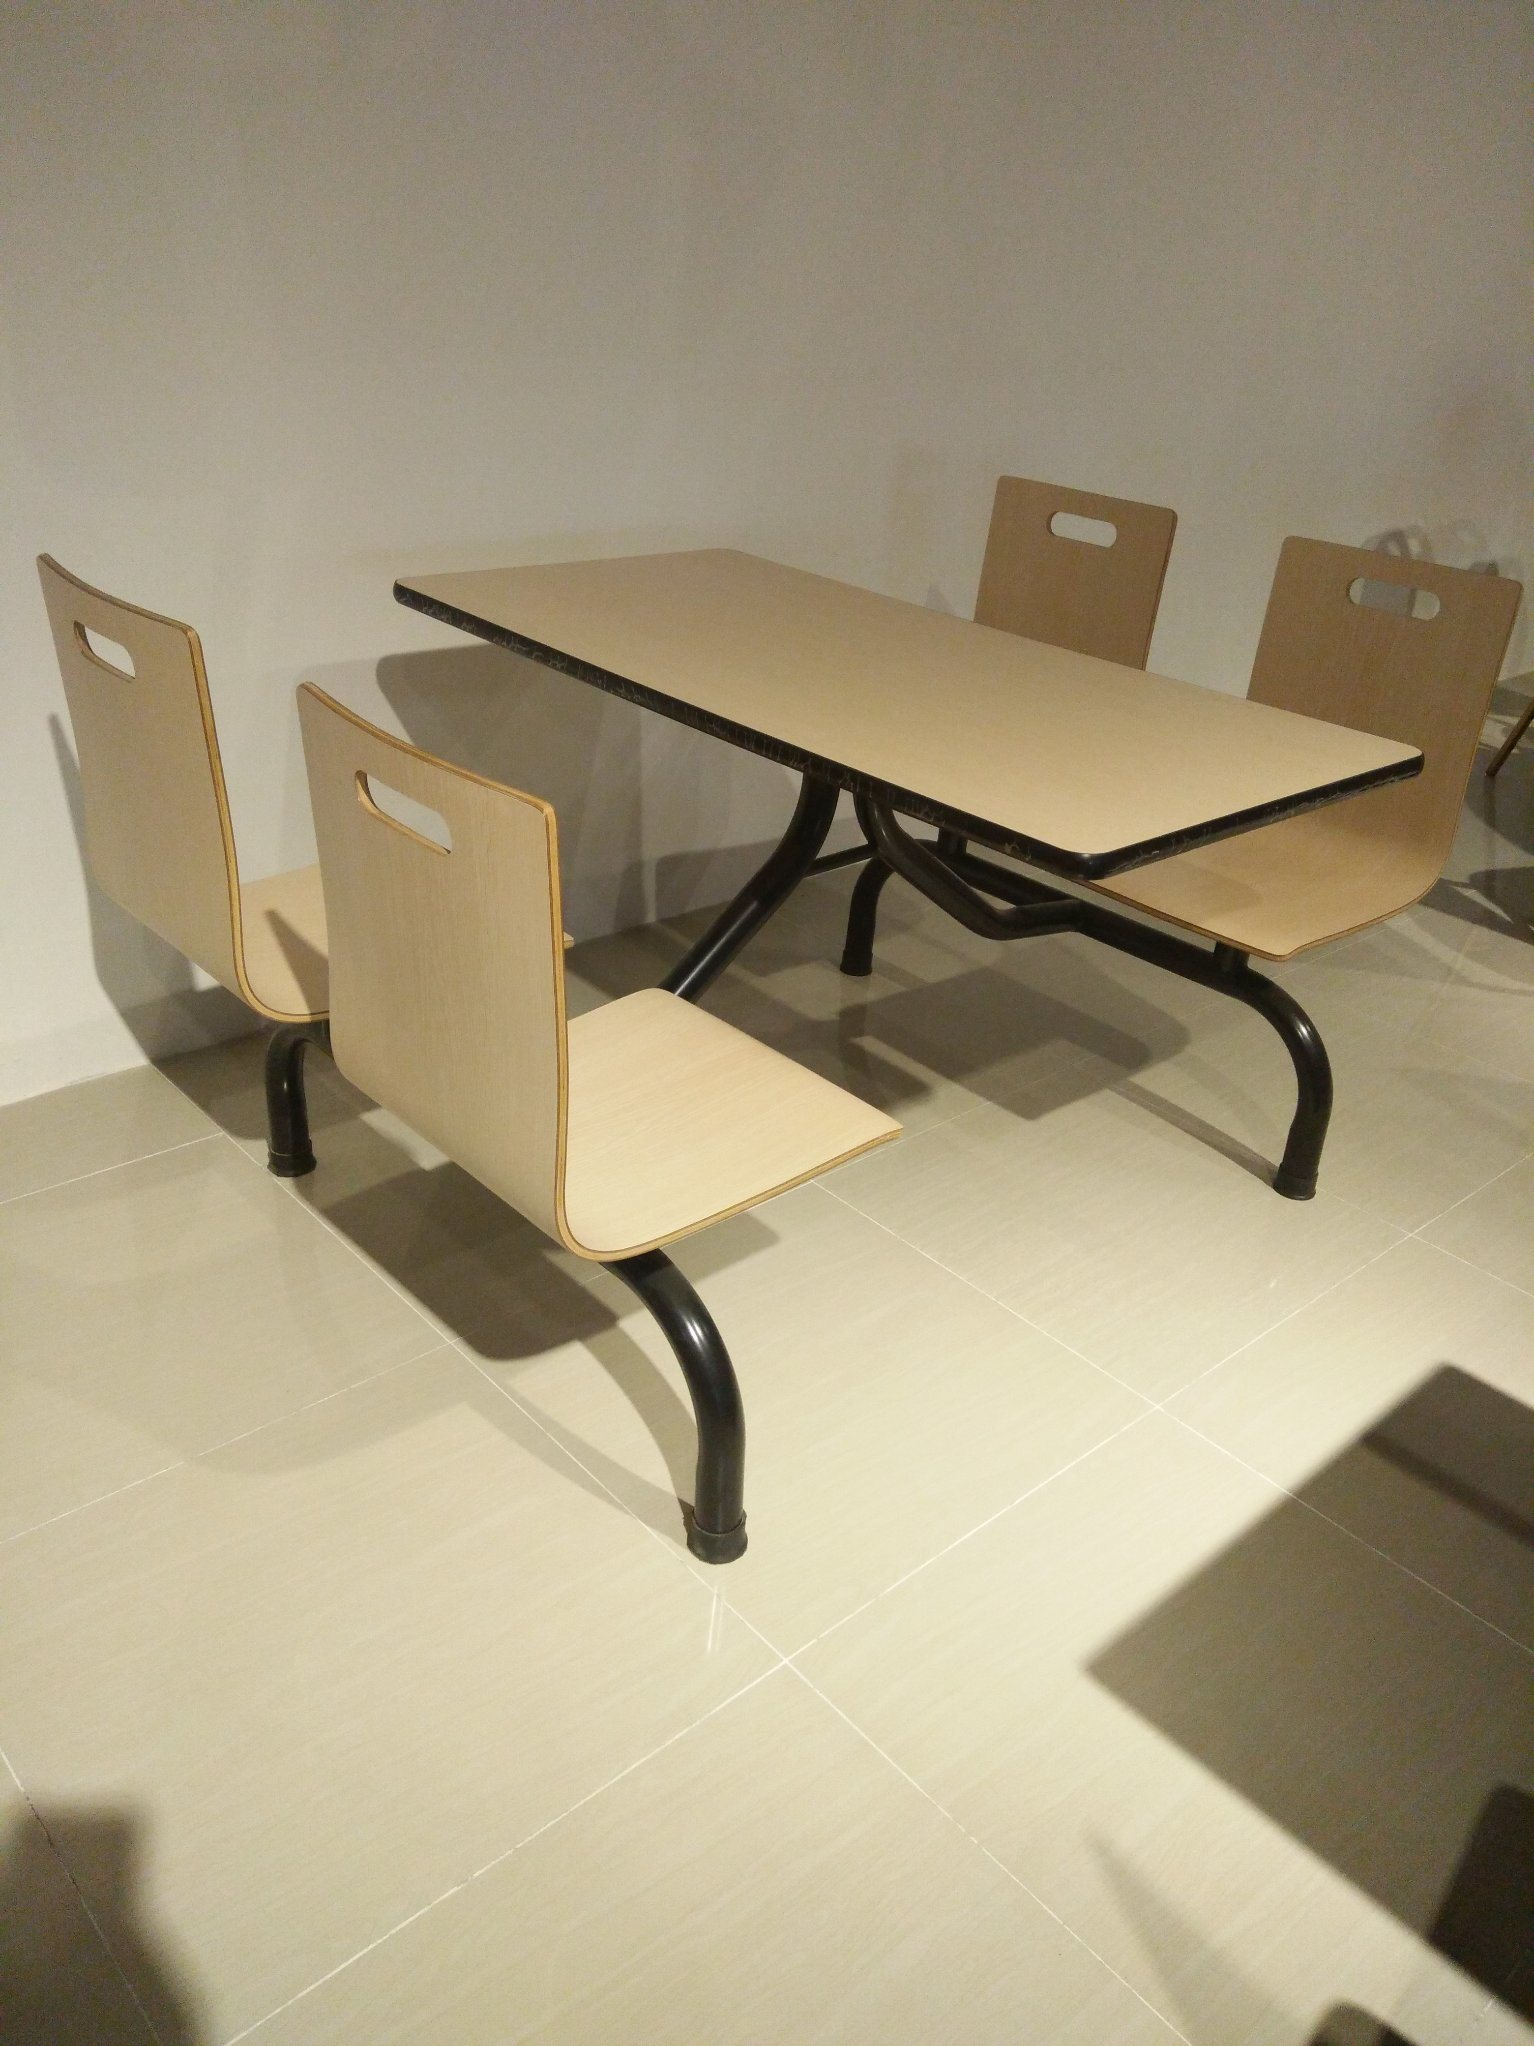 Fast Food Coffee Cafeteria Furniture Plywood Table and Chair Set